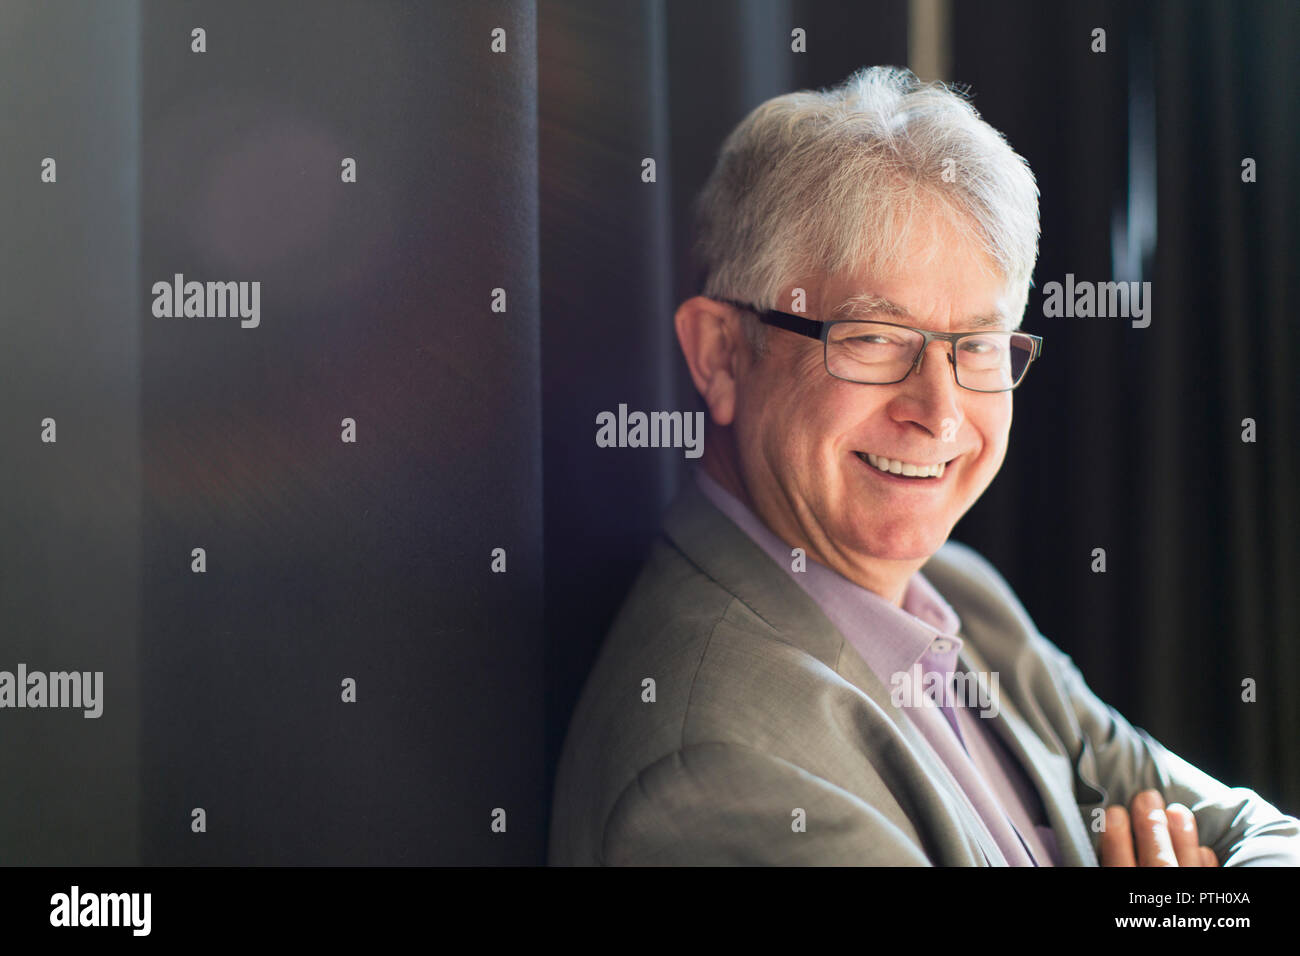 Portrait souriant, confiant senior businessman Photo Stock